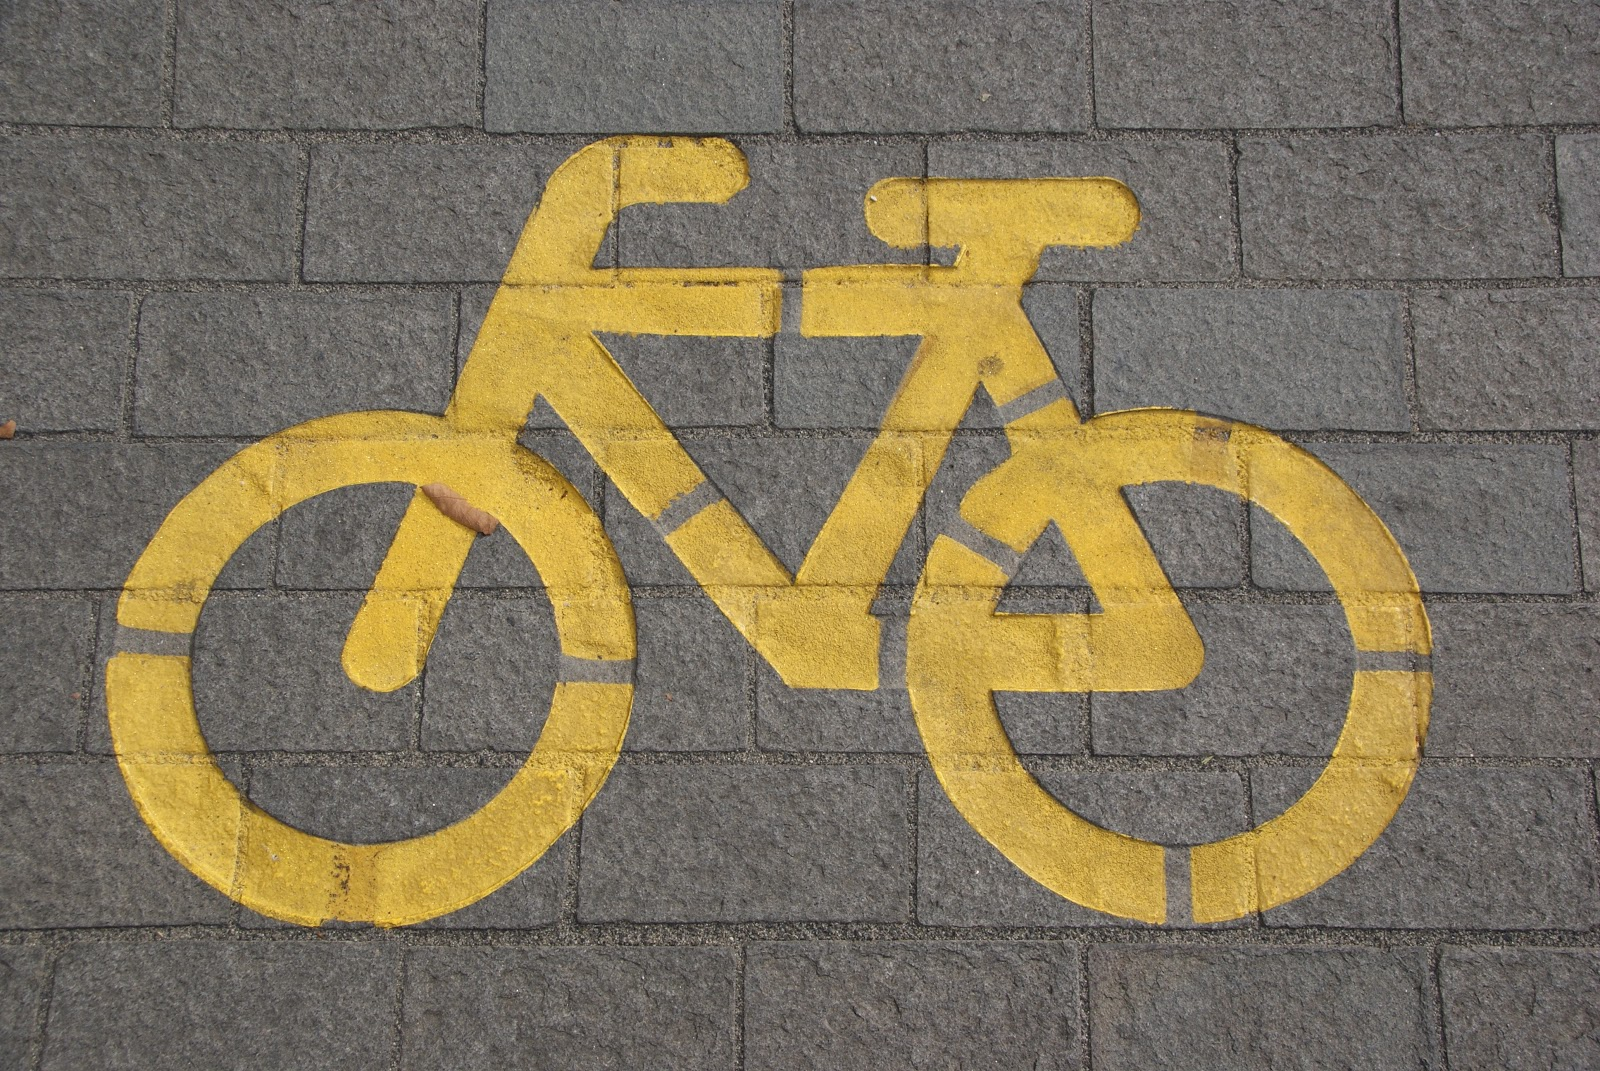 bicycle lane on gray concrete road 210095